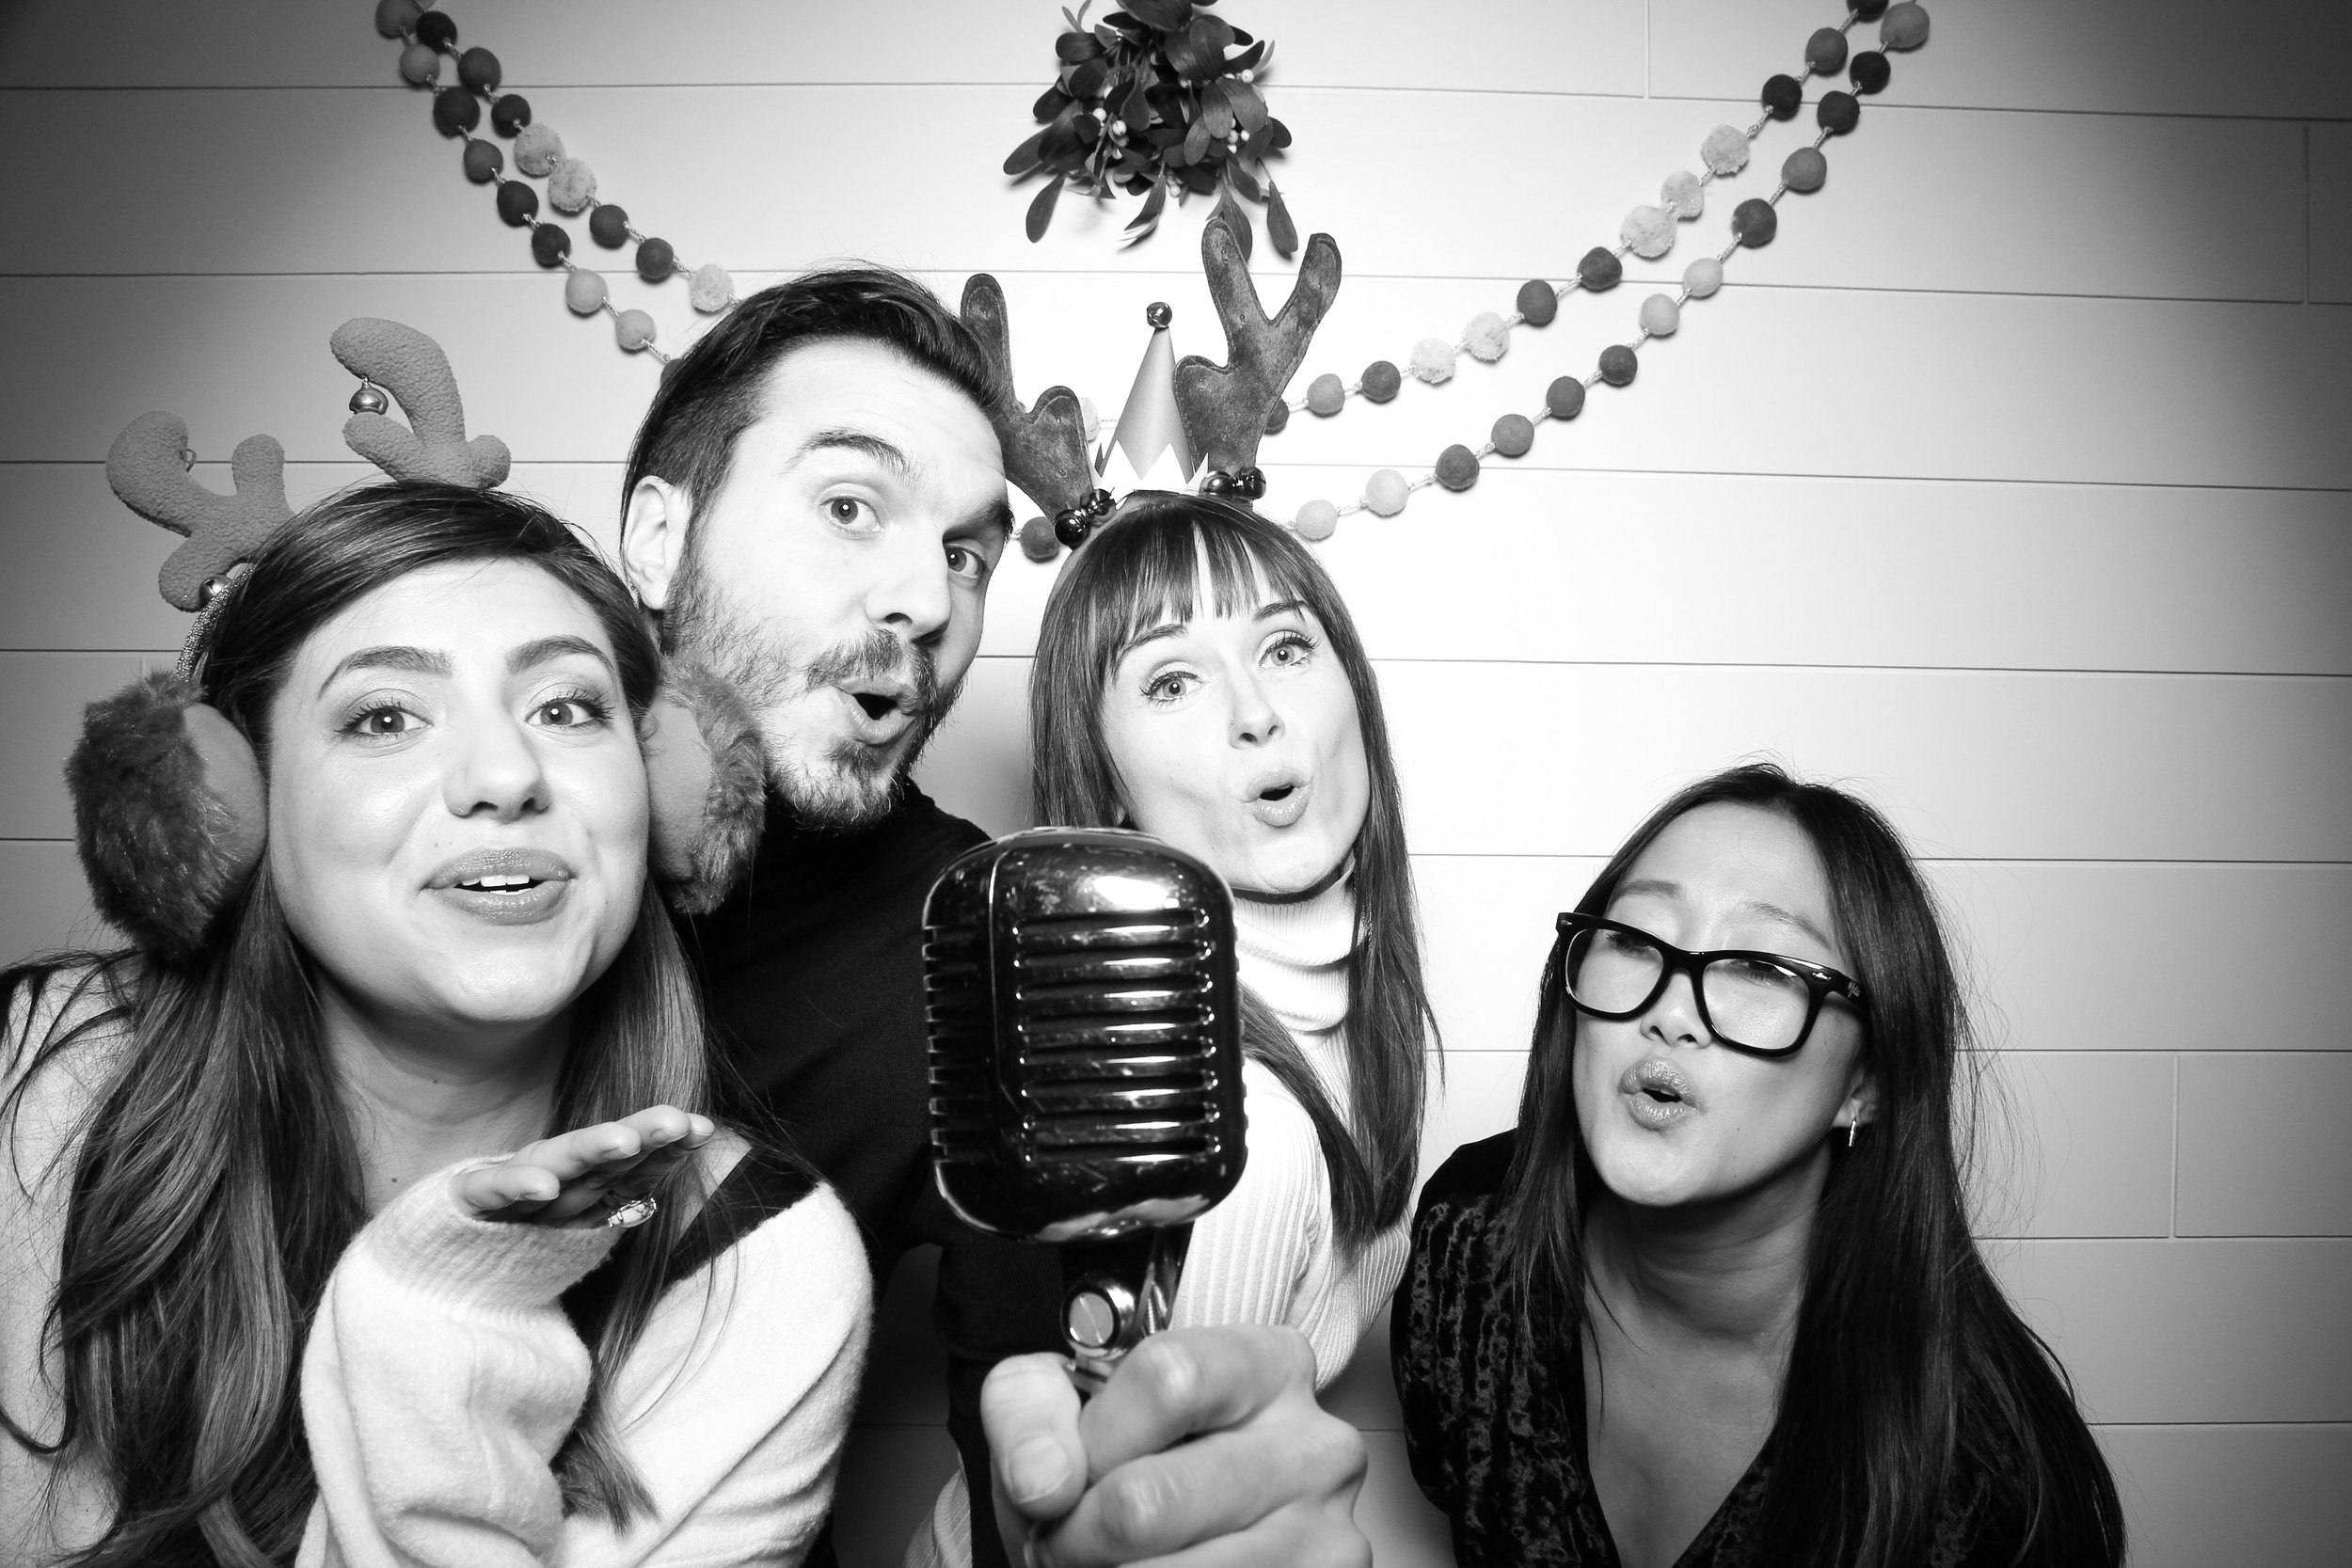 Chicago_Vintage_Photobooth_Christmas_Holiday_Party_11.jpg